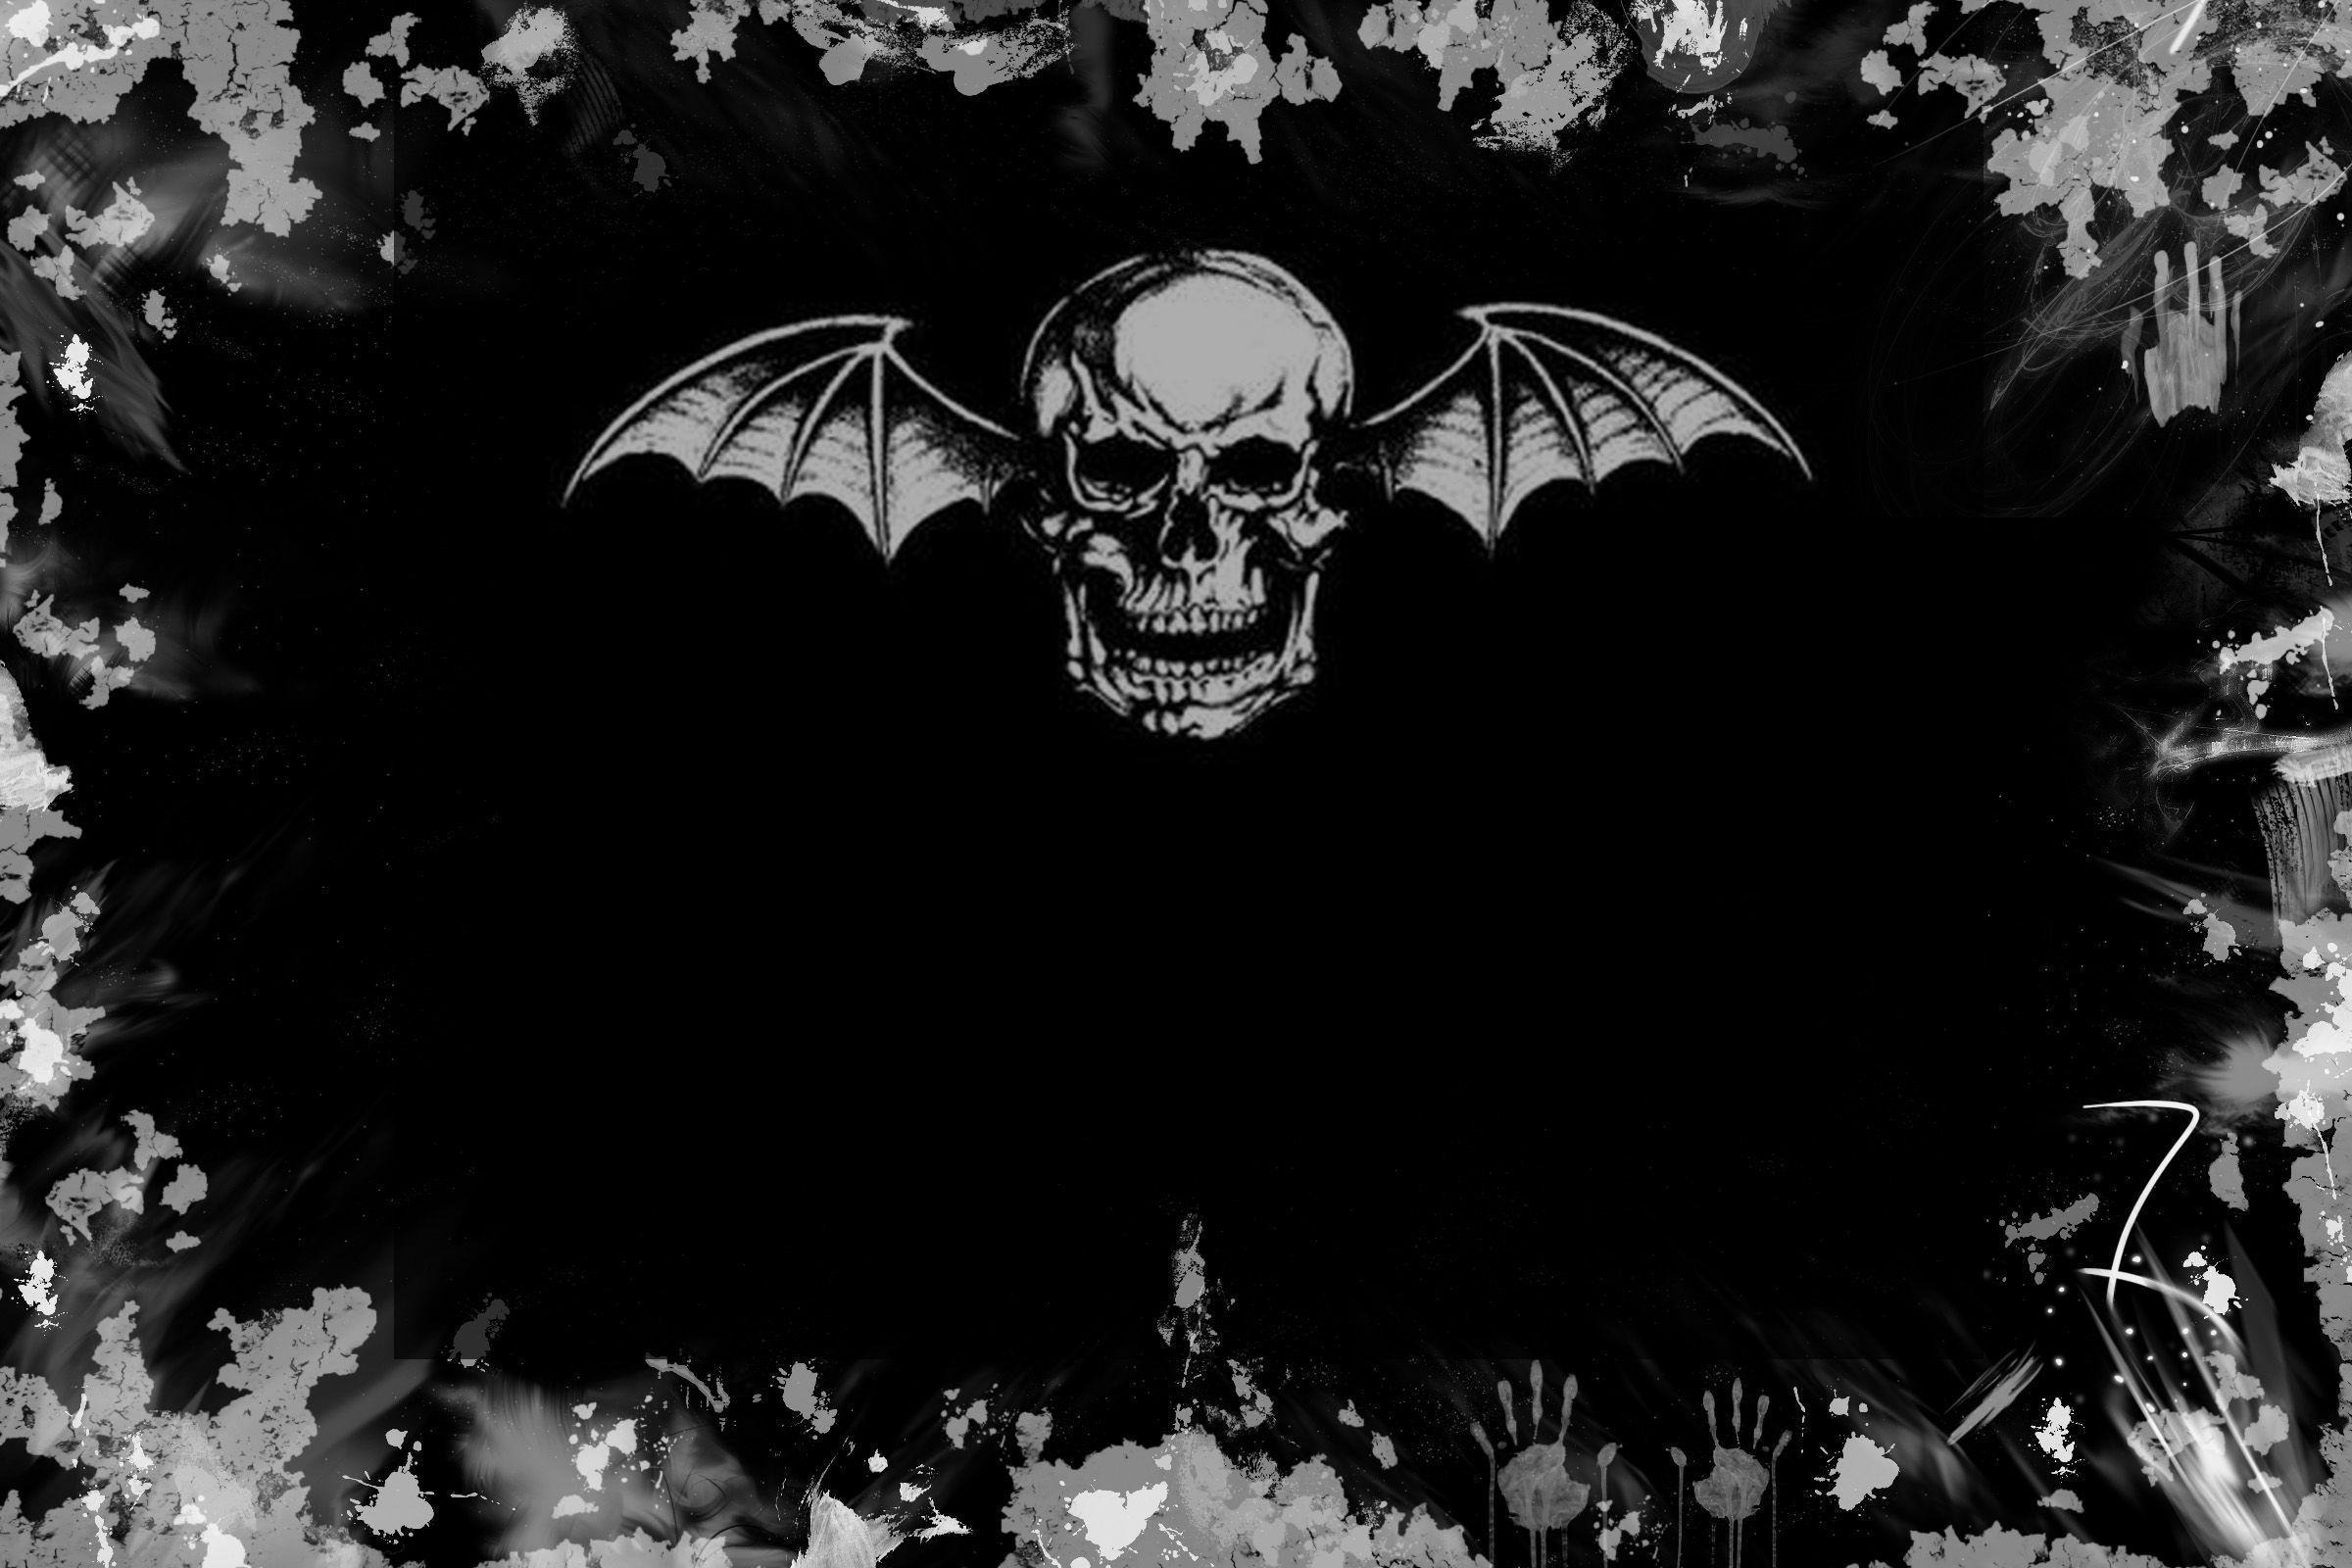 PC 2400x1600 Avenged Sevenfold Wallpaper, Wallpapers and Pictures